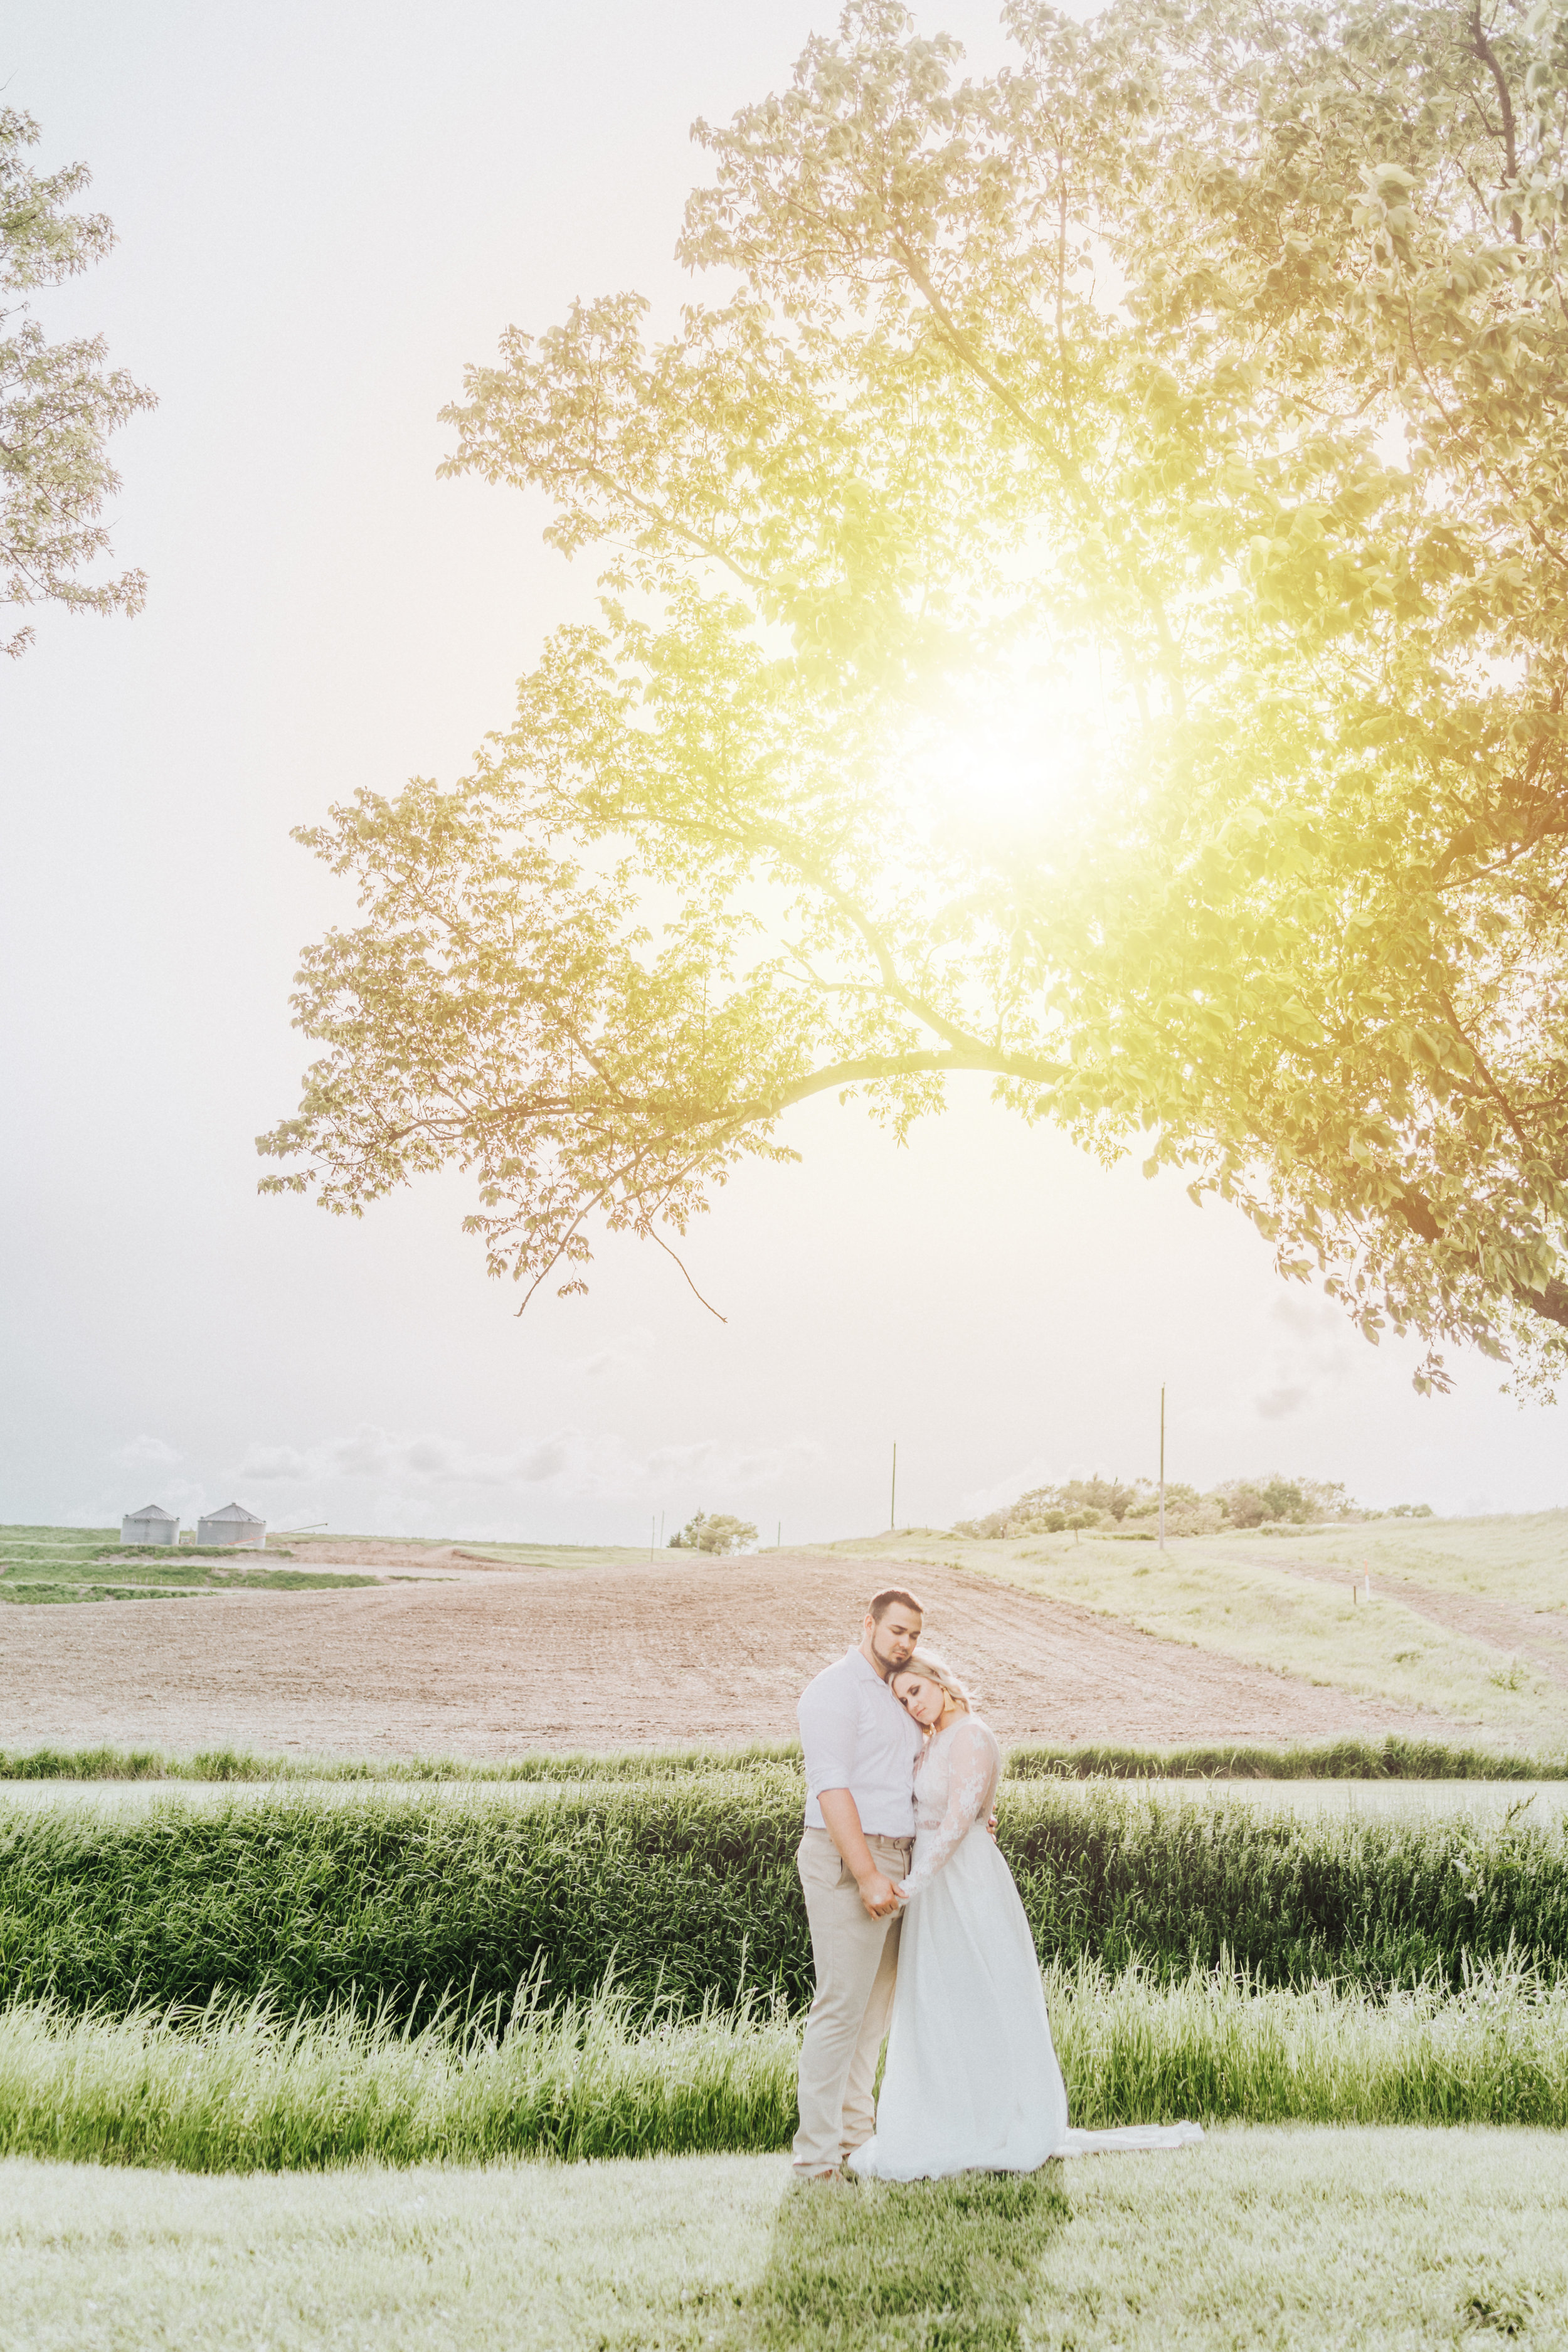 240 tiny-luxe-weddings-iowa-venue-photogeraphy-palace.jpg